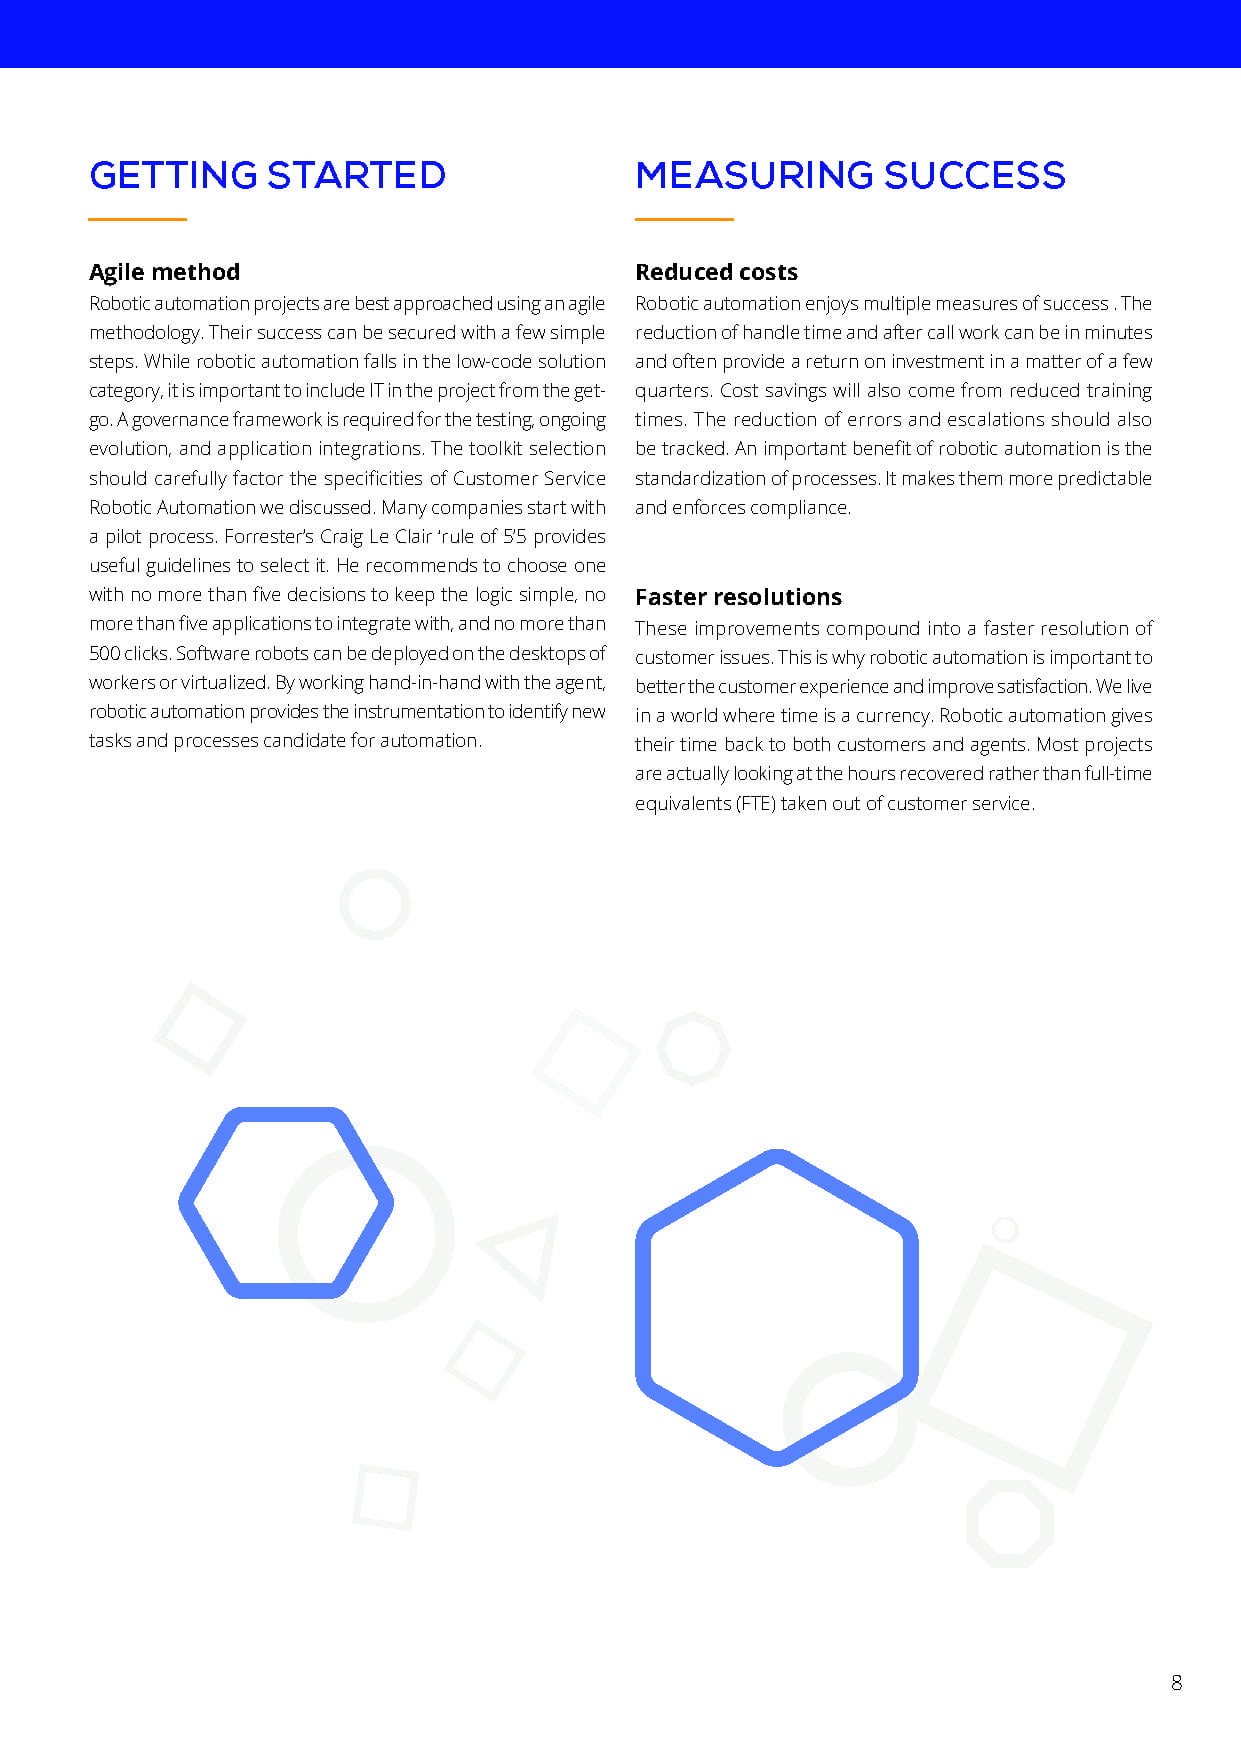 Whitepaper-The-Rise-of-Customer-Service-Robotic-Automation (1)_Page_08